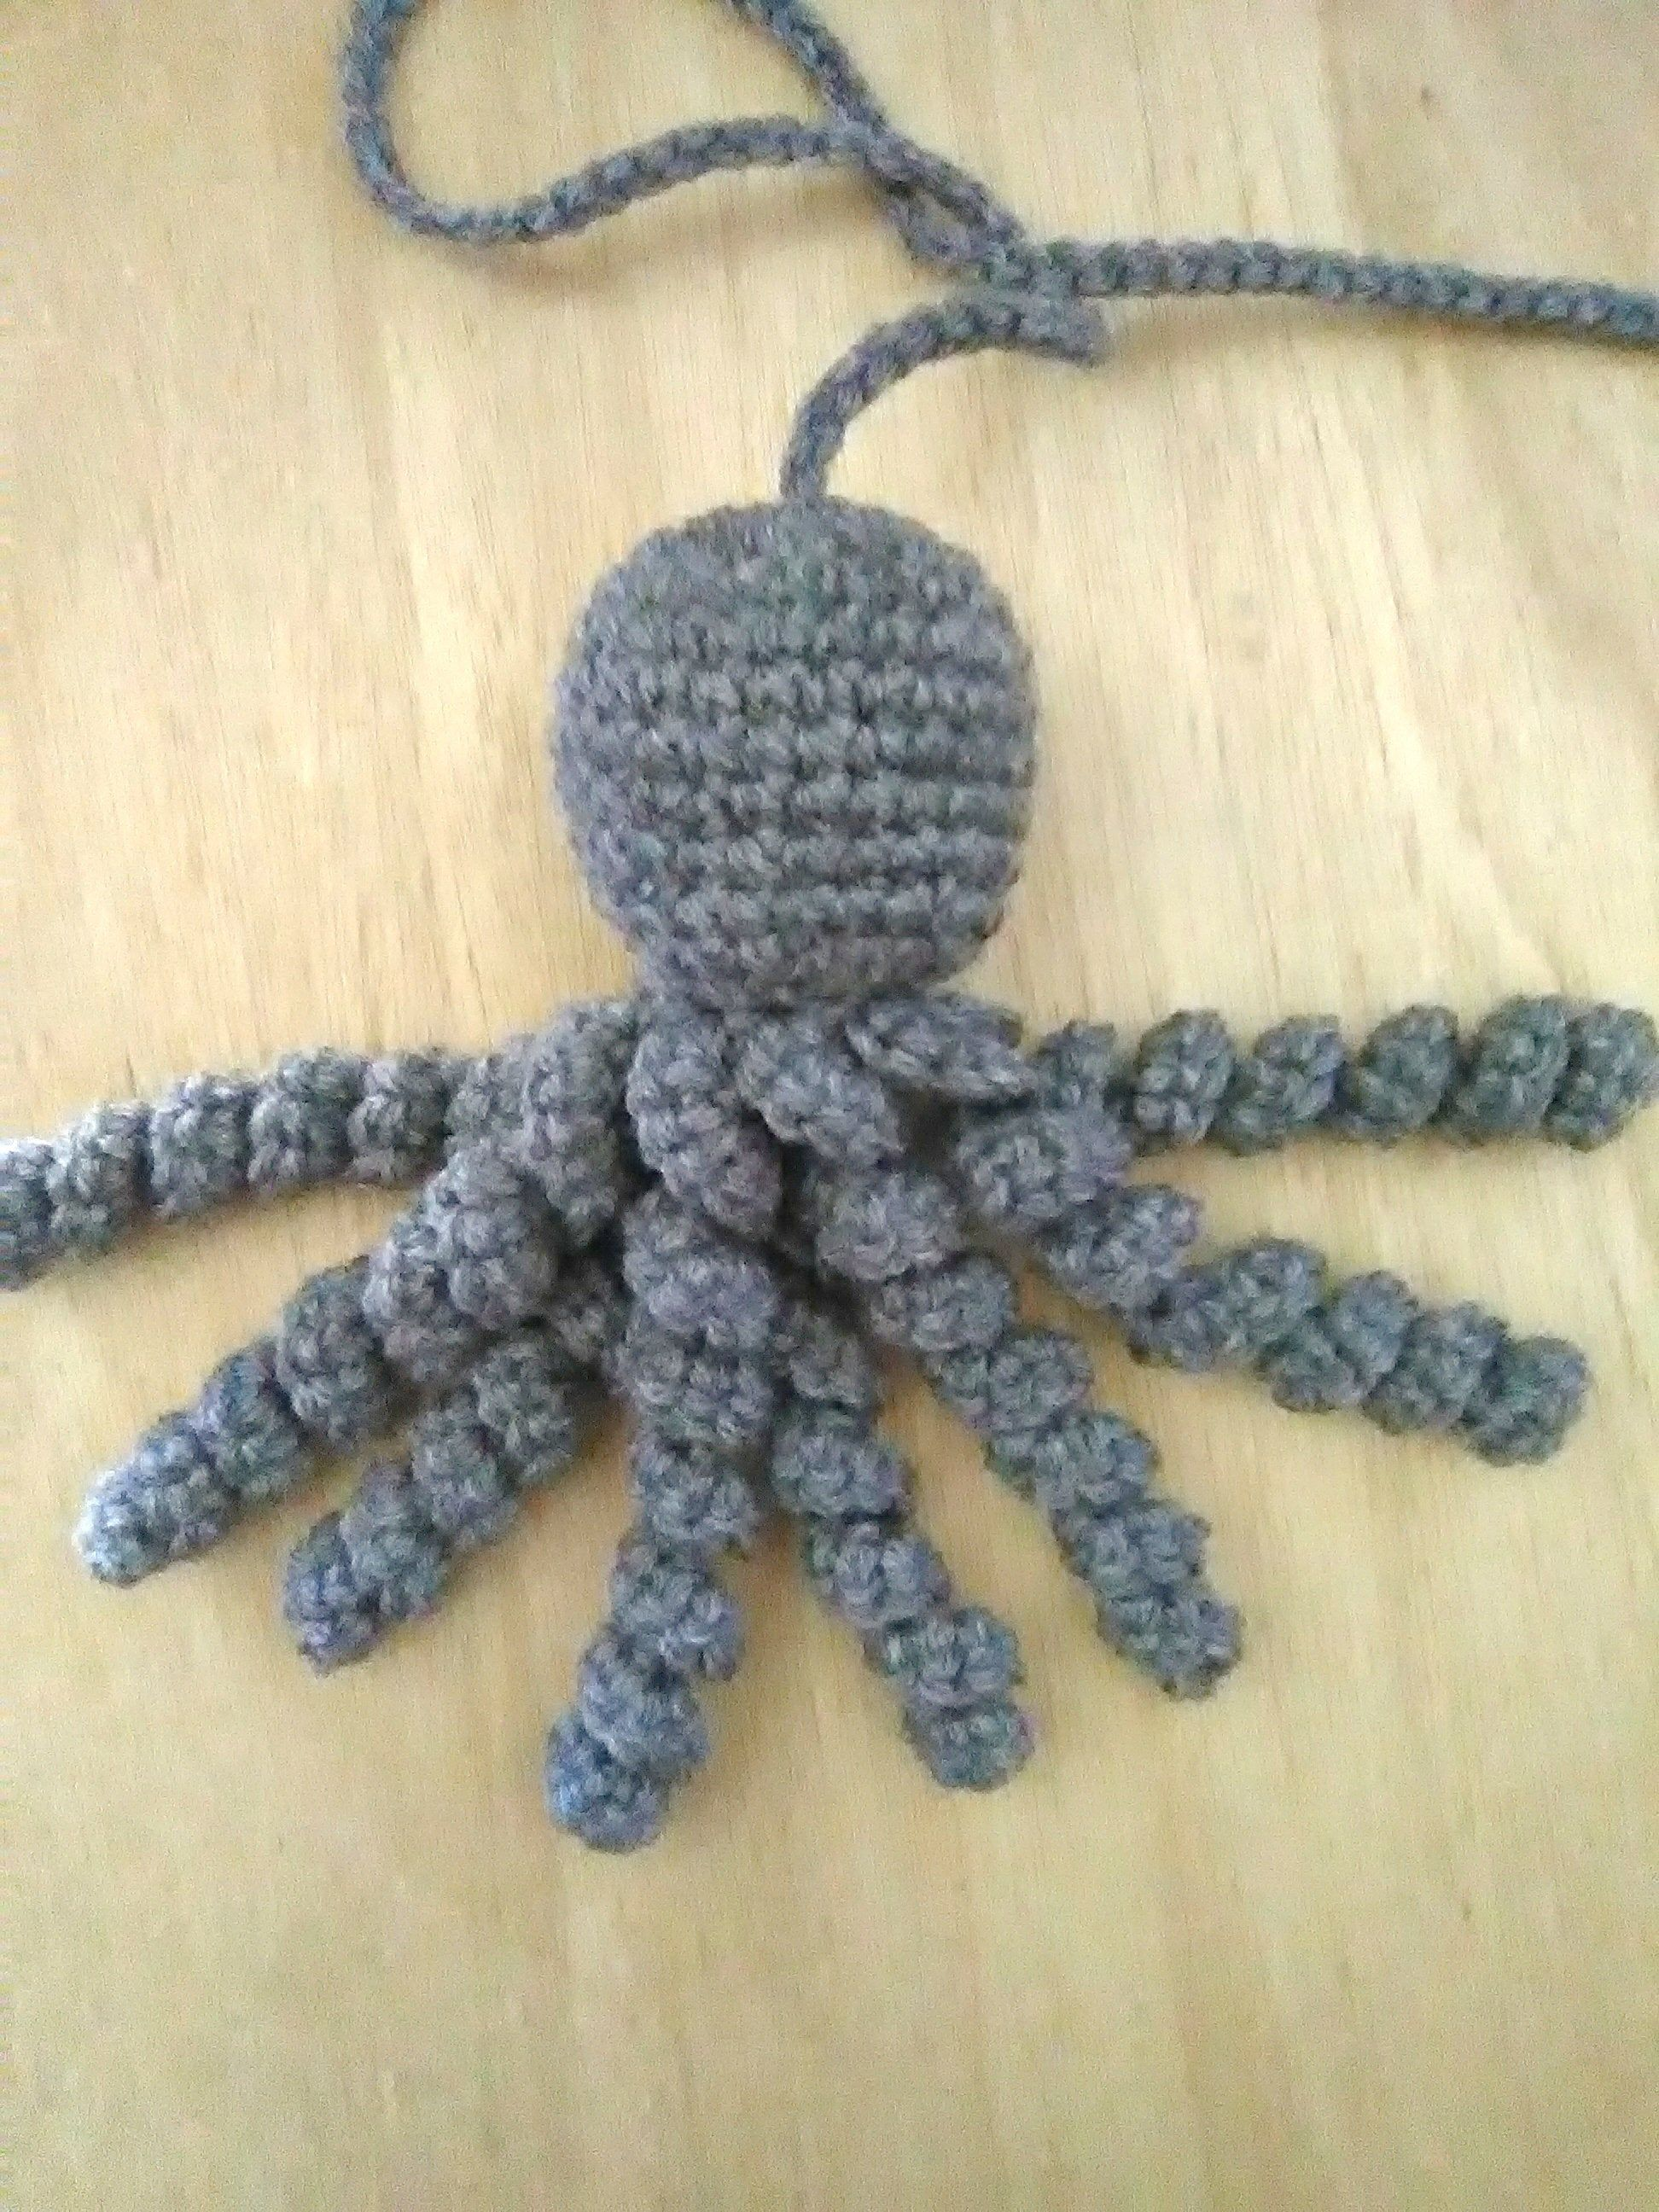 Octopus cat toy, crochet octopus cat toy, crochet catnip octopus, catnip octopus cat toy, catnip cat toys, catnip cat toy on a string,